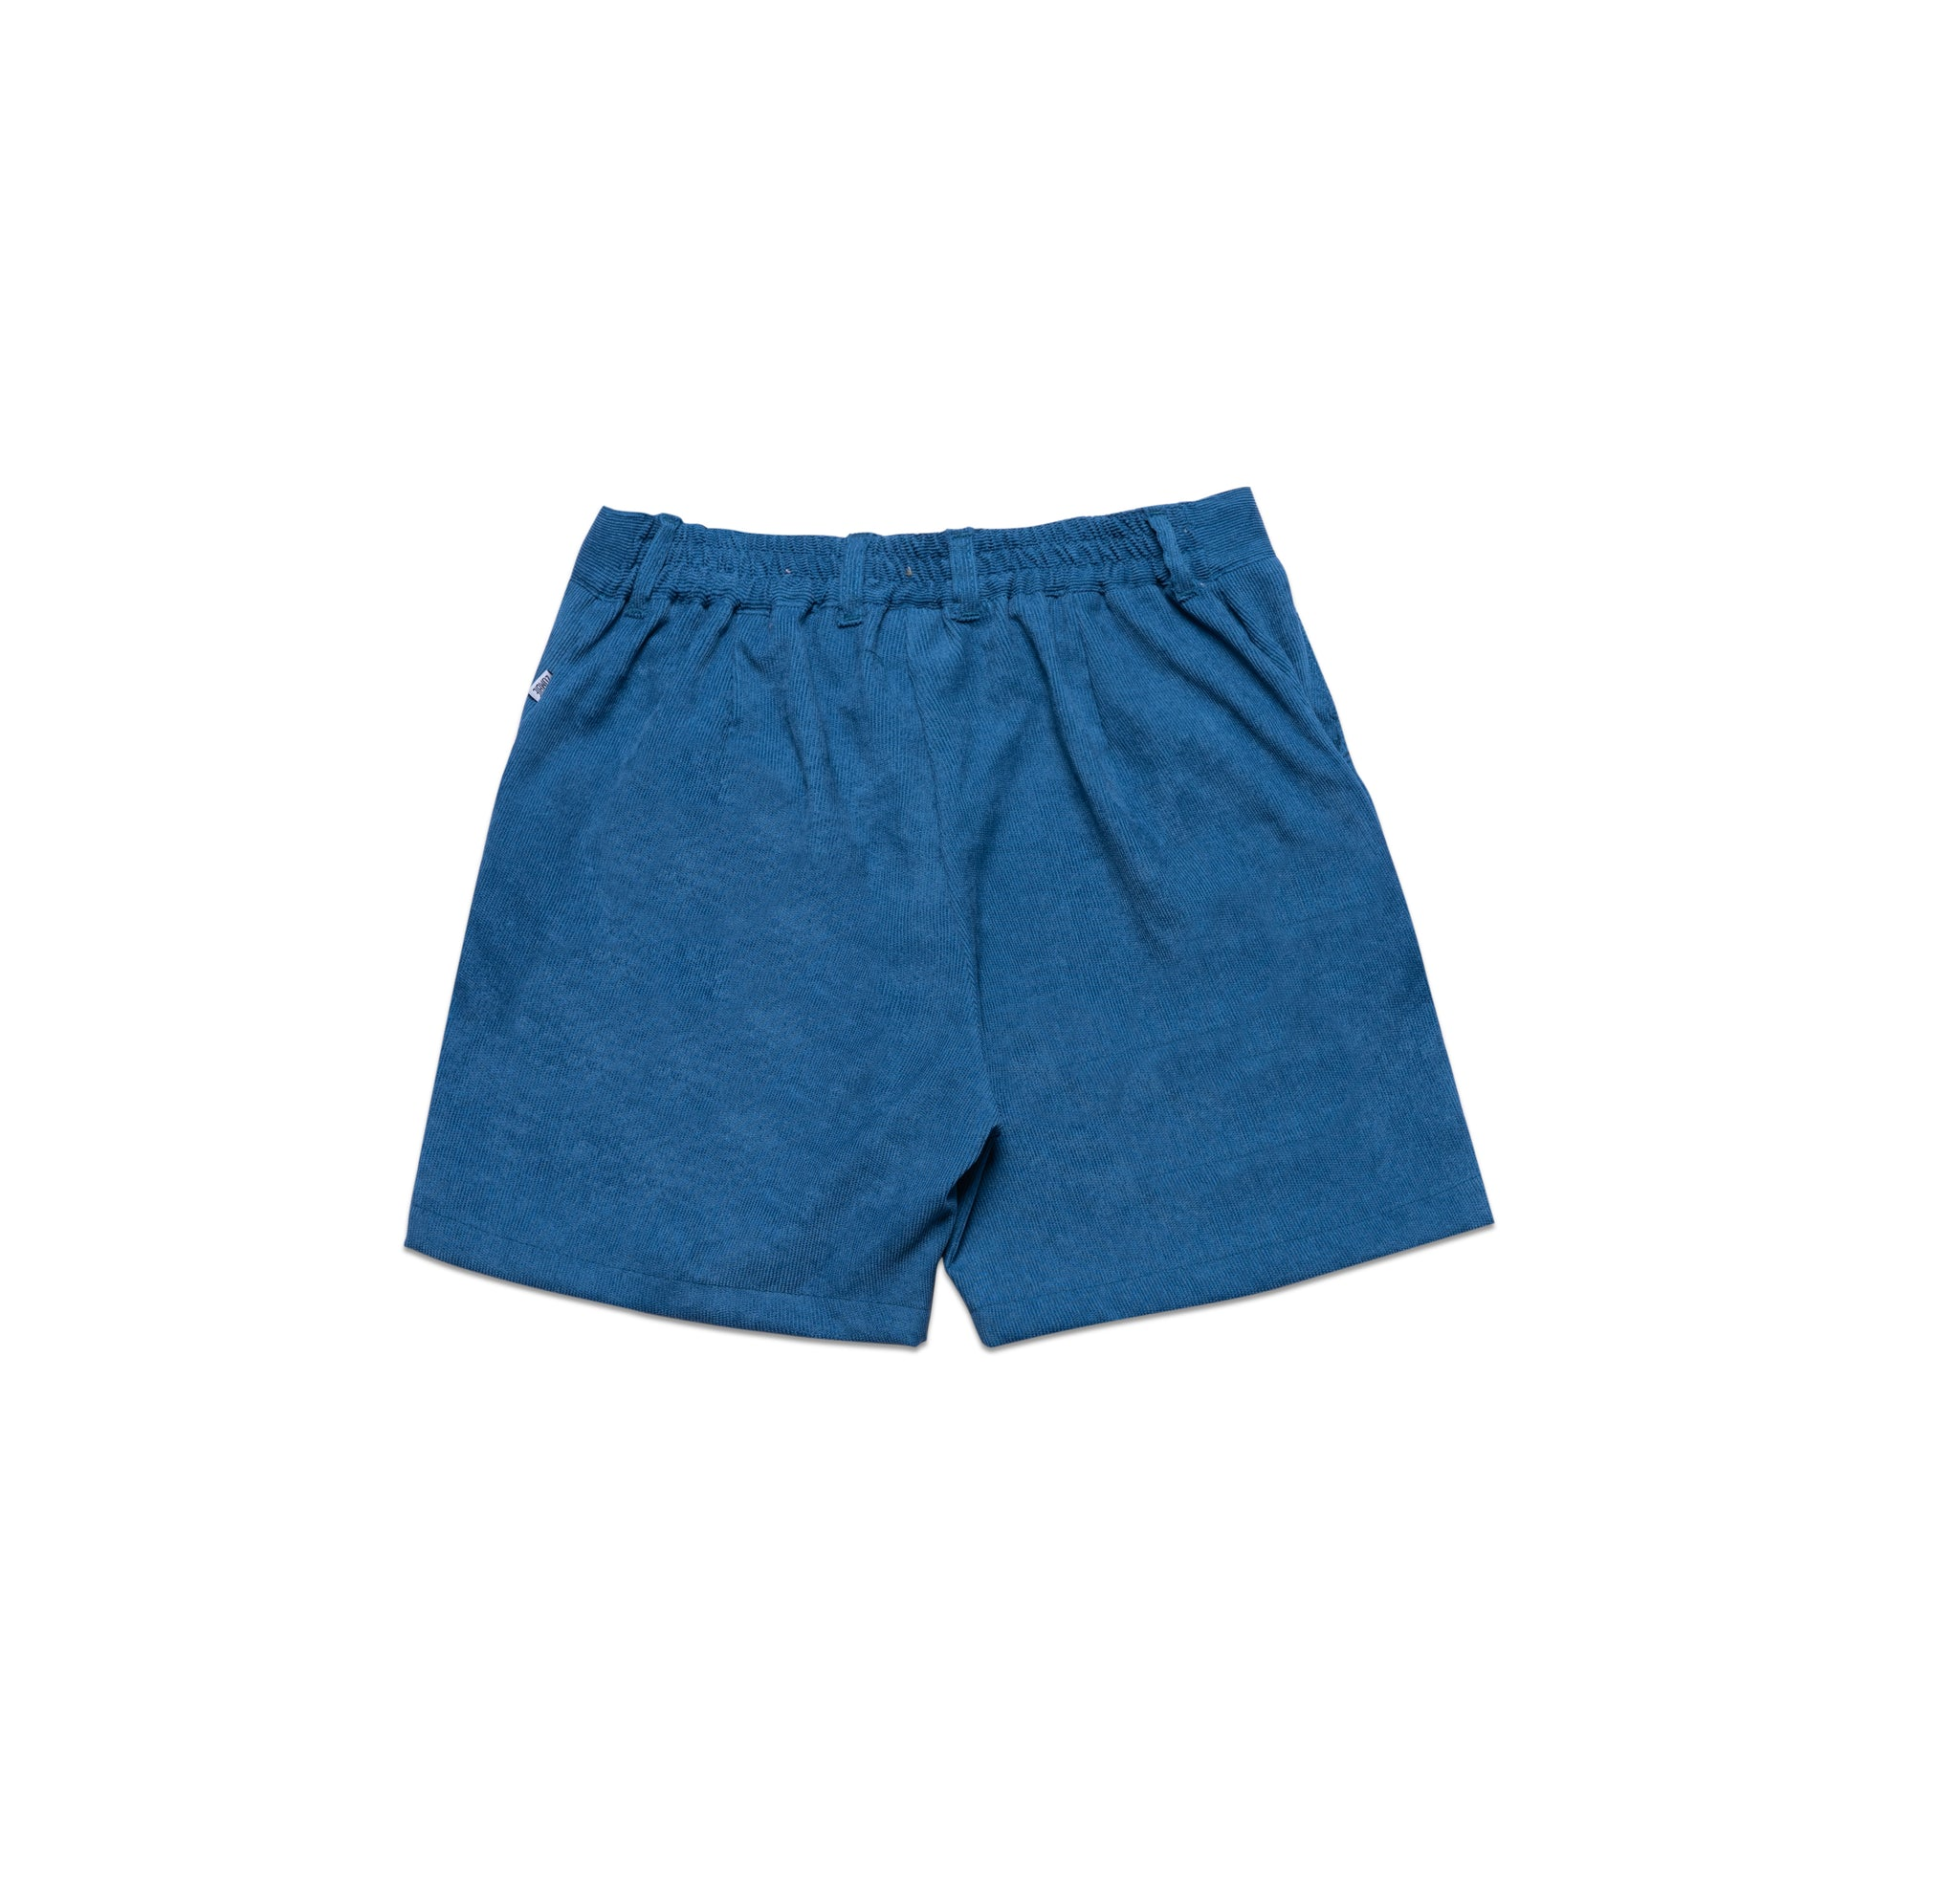 SUEDE SHORT PANTS IN BLUE